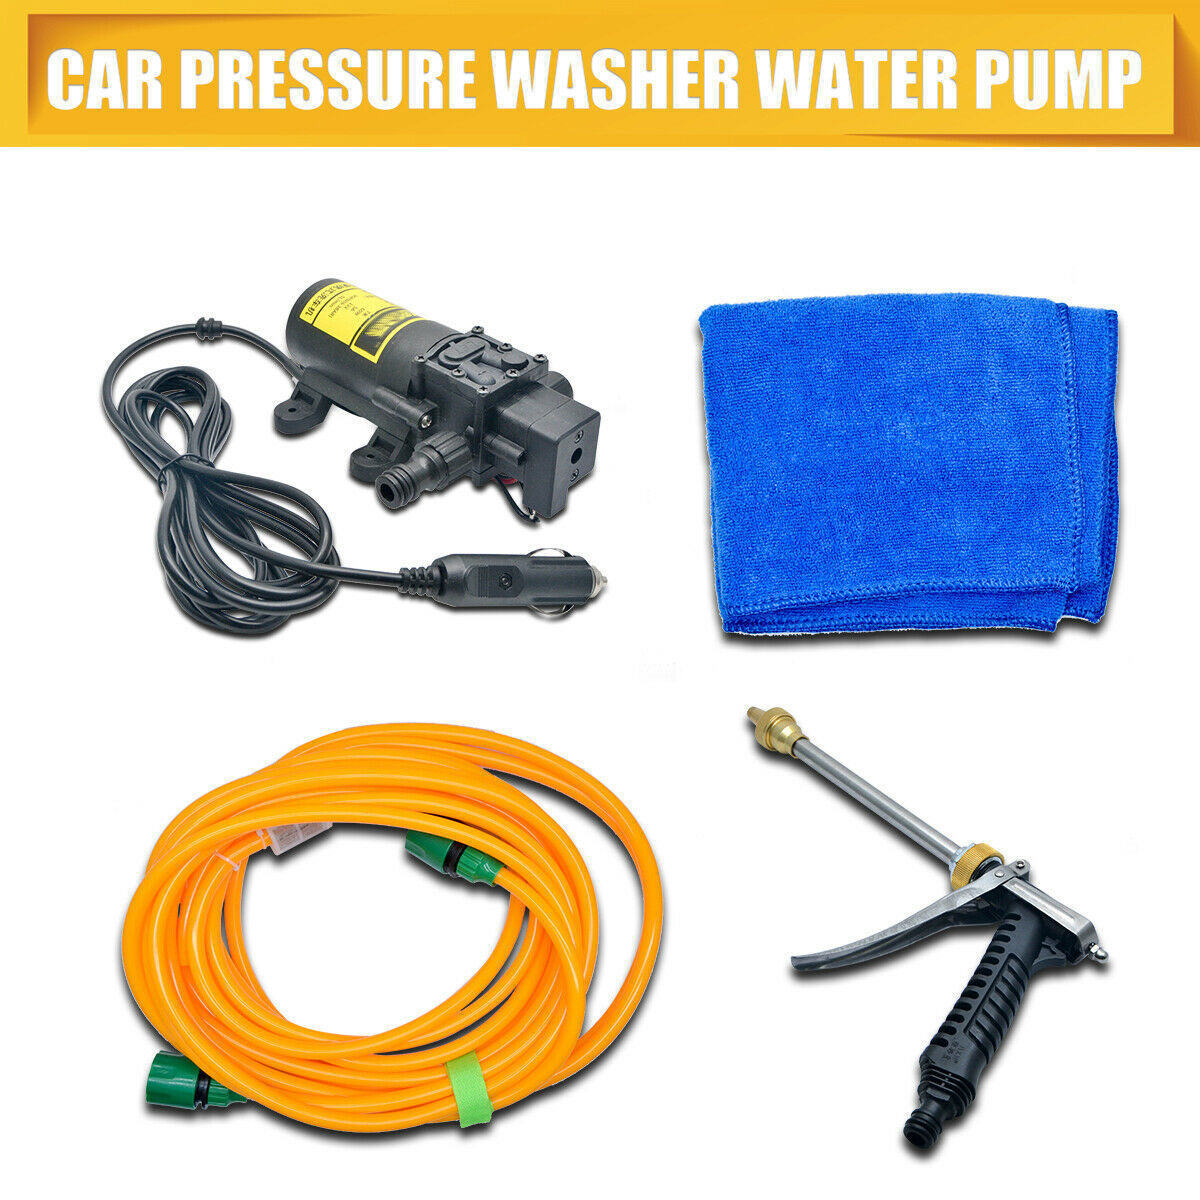 Car Pressure Washer Power Pump 12v 80w Self-priming Electric Wash Kit Portable 2019 Official